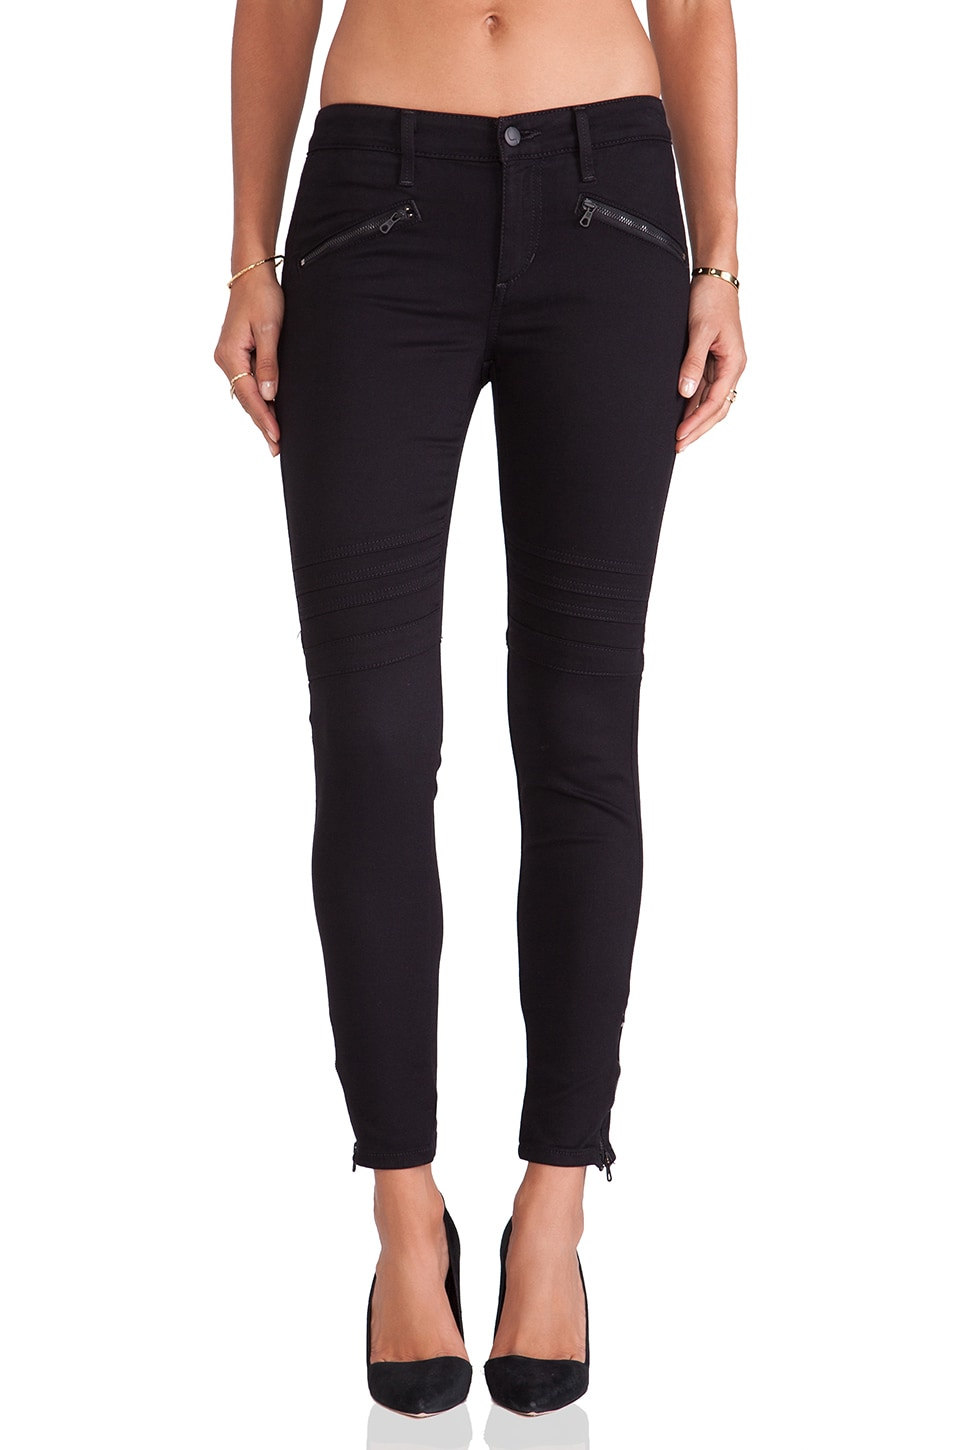 Joe's Jeans Chevron Ankle Legging in Jet Black